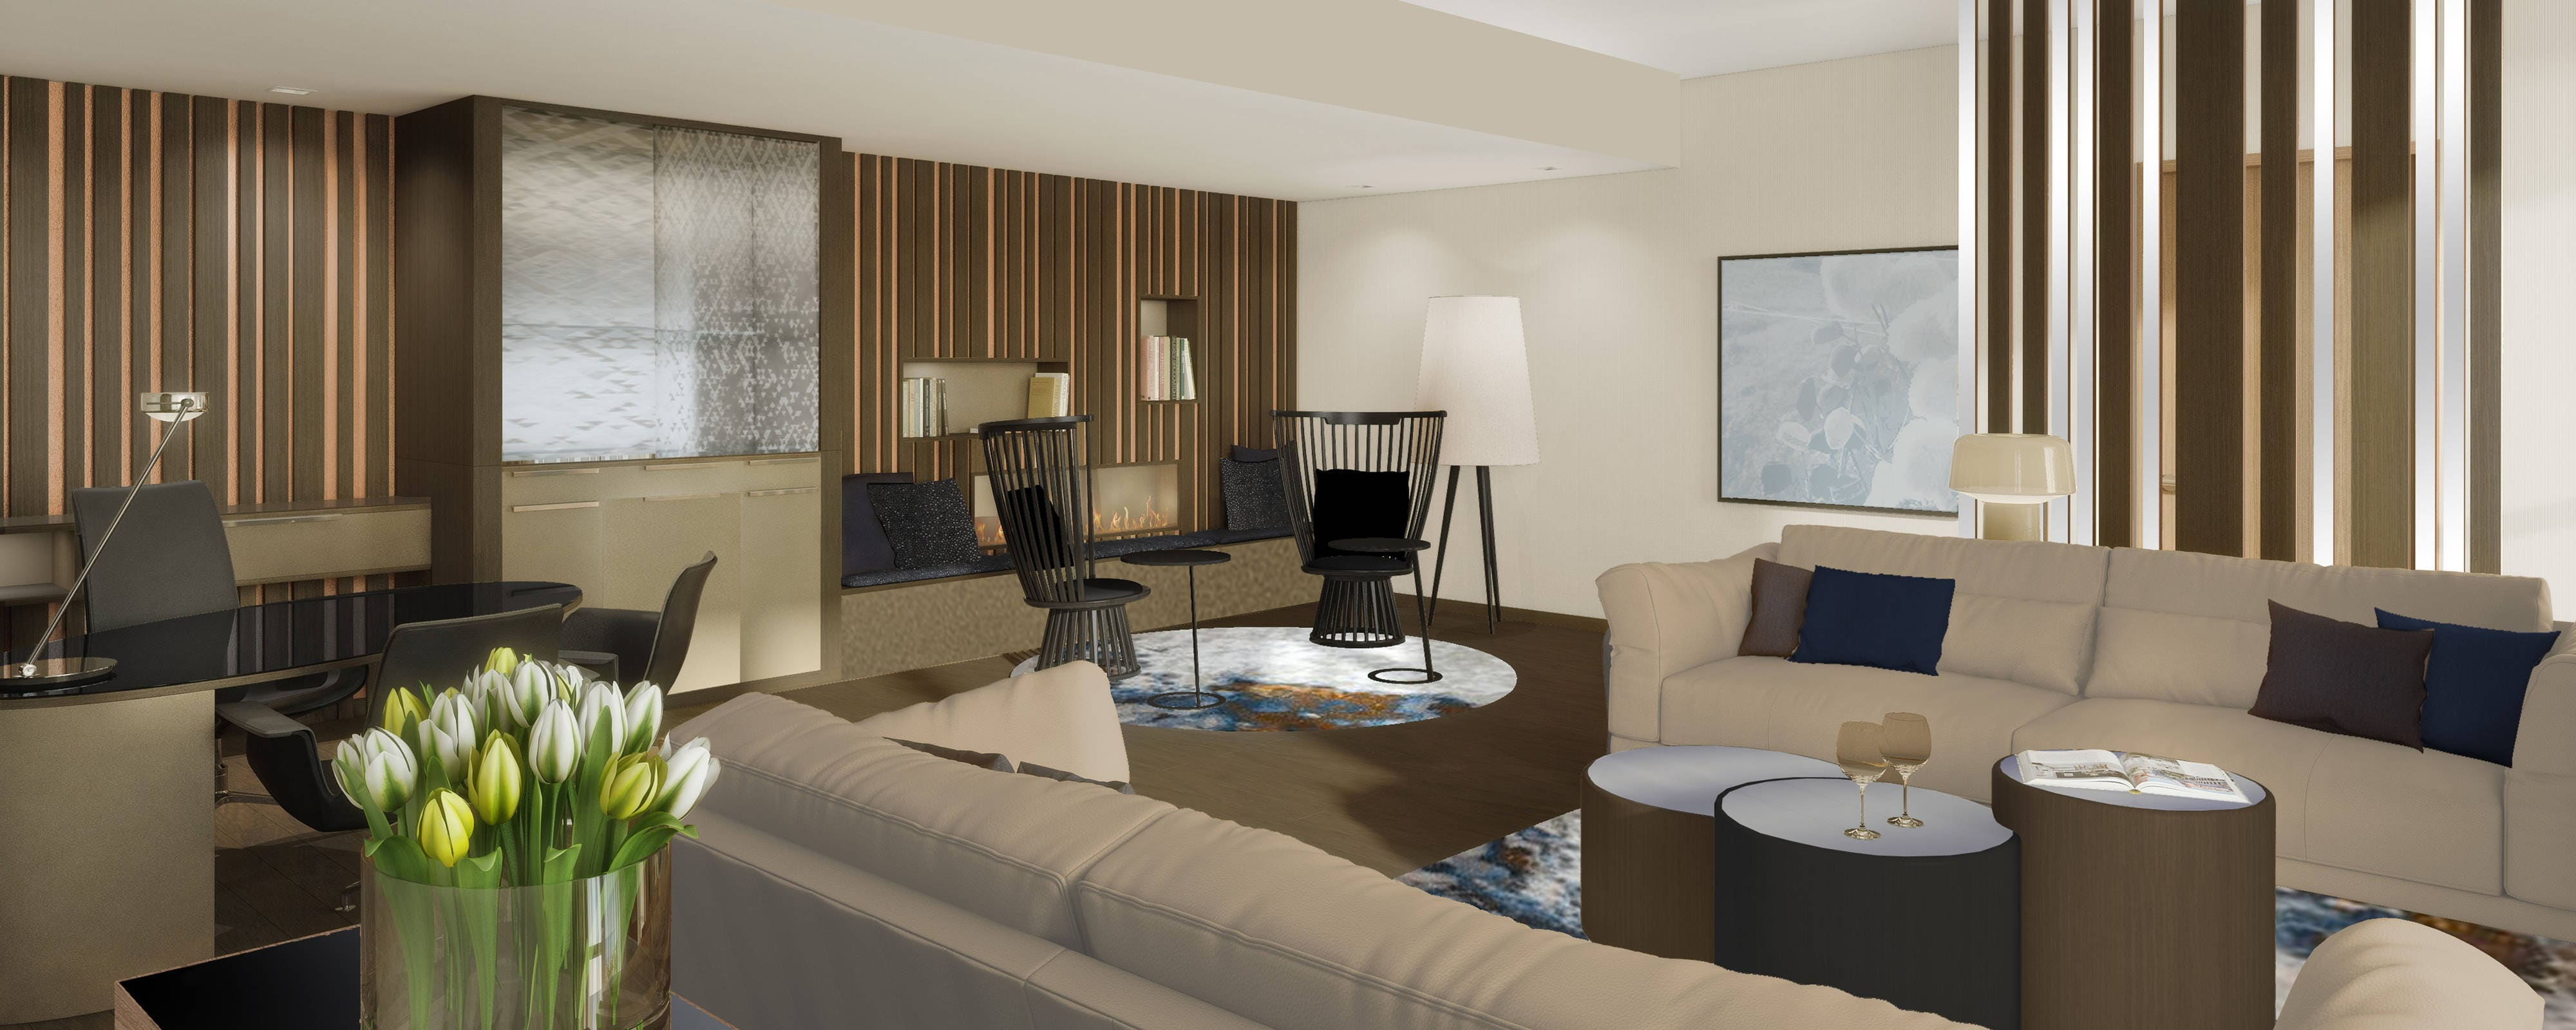 Royal Suite - Rendering